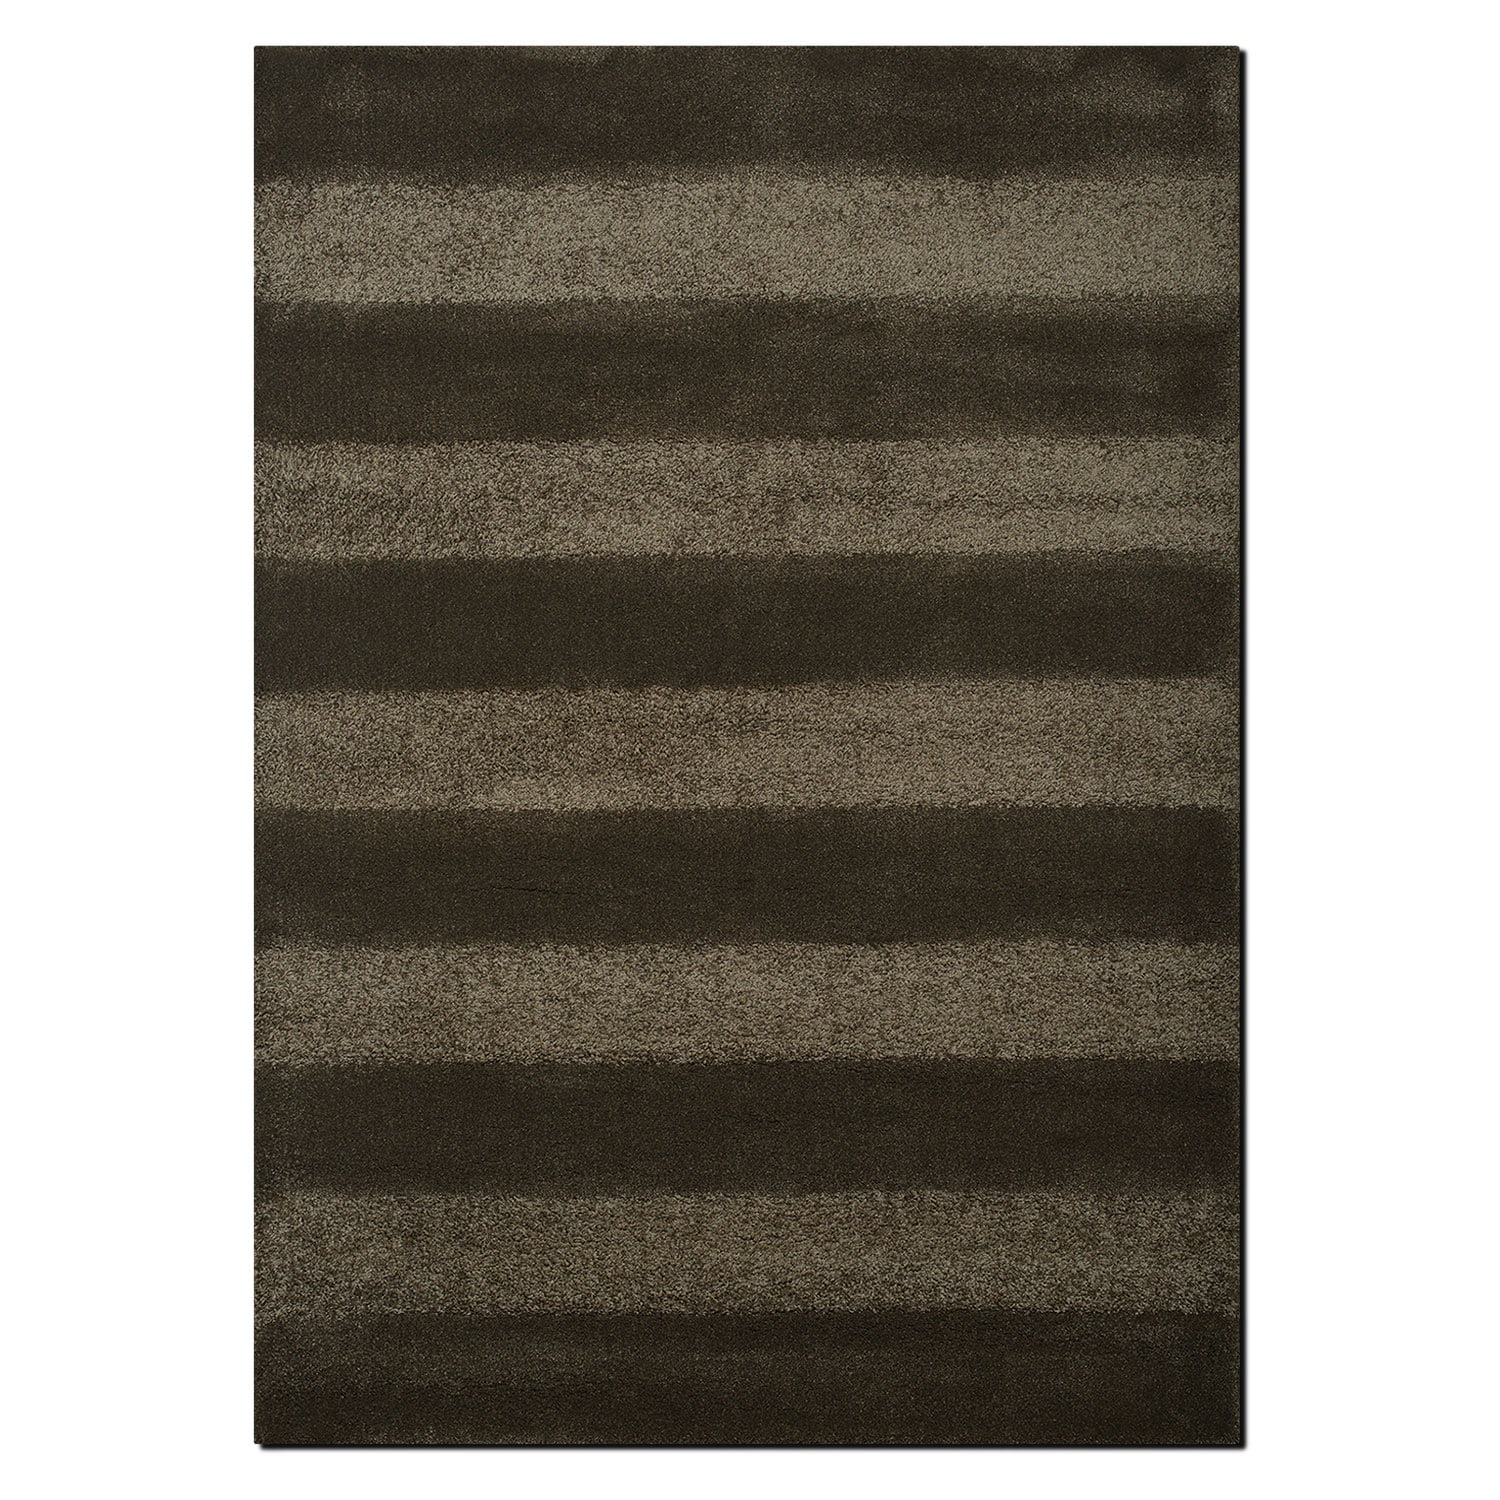 Rugs - Elements 5' x 8' Area Rug - Smoke